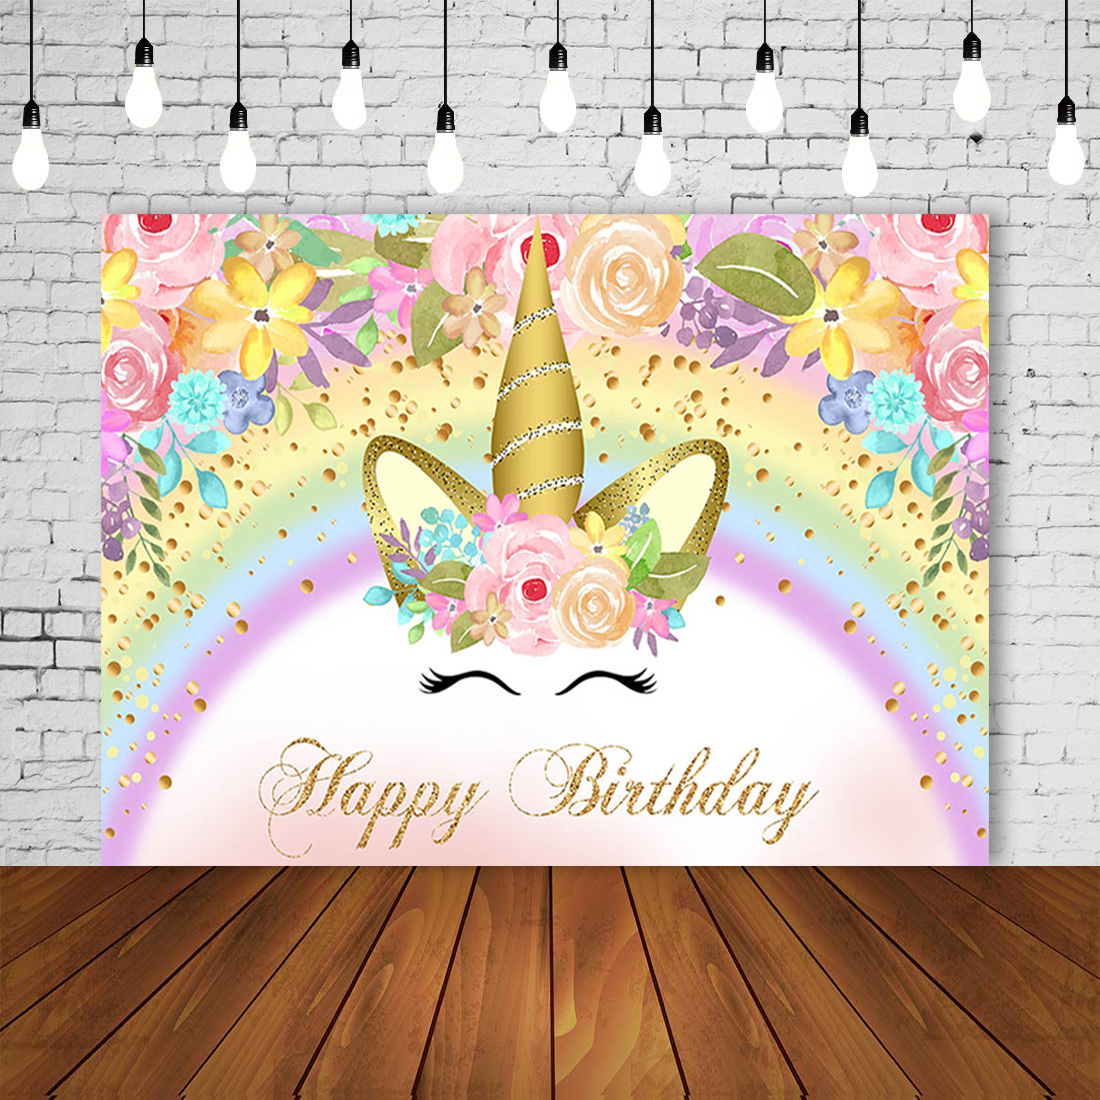 Photography Backdrop Pastel Rainbow Girl Unicorn Birthday Party Banner Princess Sweet Pony Decoration Floral photobooth Background Baby Shower Posters photocall Filming Dessert Table Mural Props